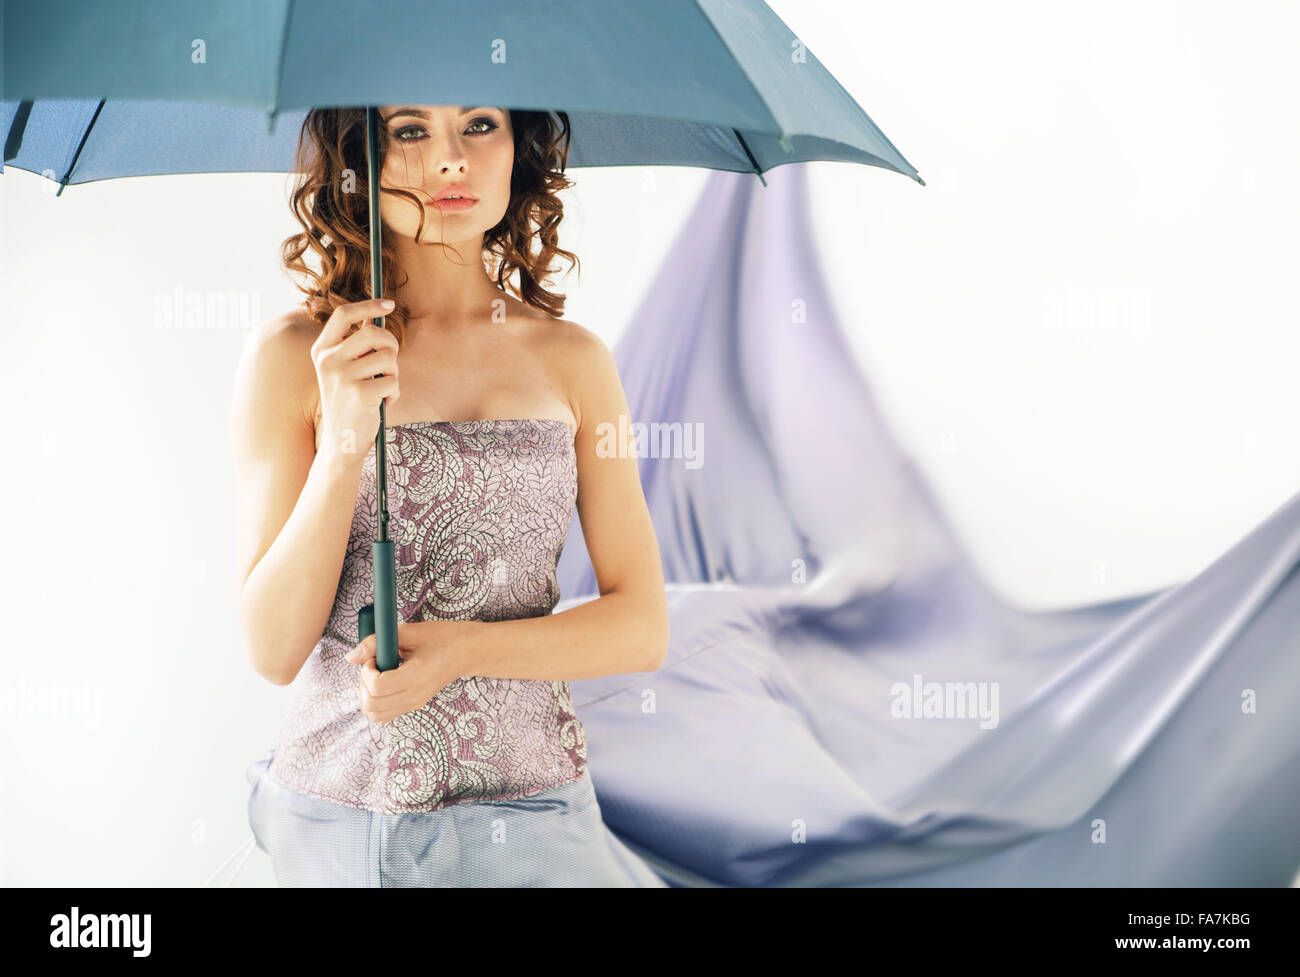 Adorable brunette lady holding an umbrella - Stock Image